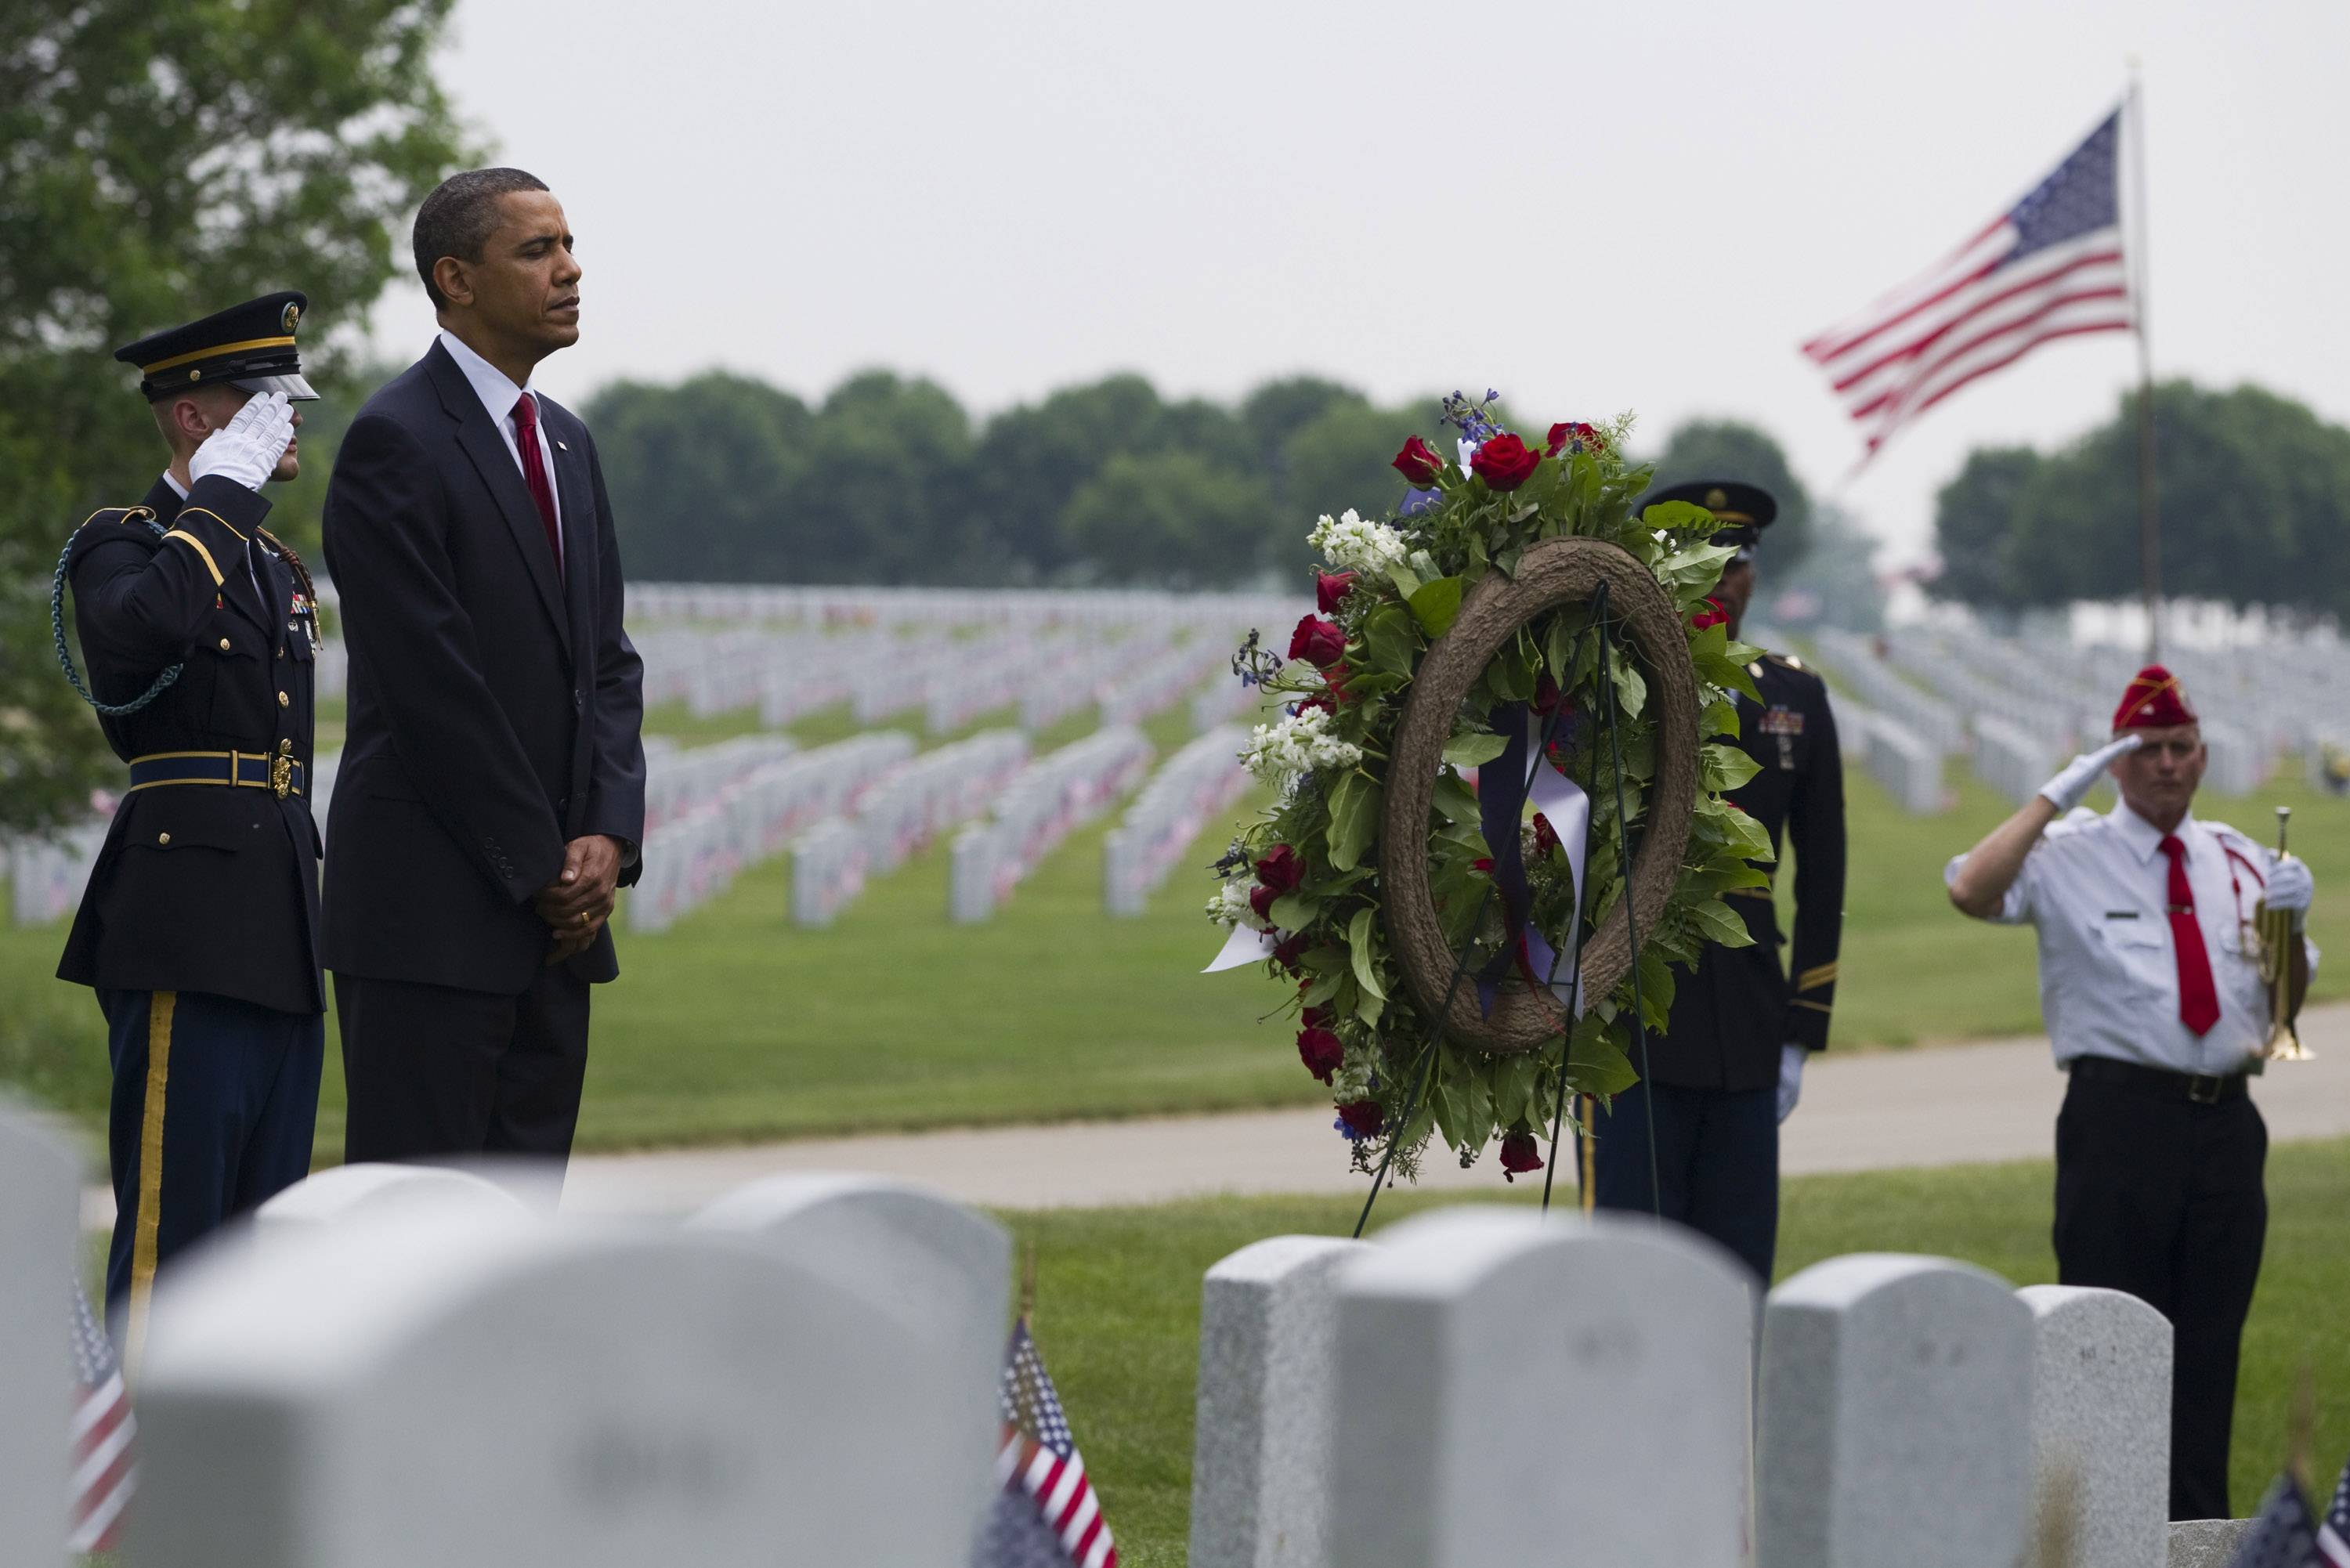 President Barack Obama lays a wreath and stands for a moment of silence before a Memorial Day ceremony at Abraham Lincoln National Cemetery on May 31, 2010, in Elwood, Ill. False rumors that he spent the day at a friend's barbecue have been circulating online.